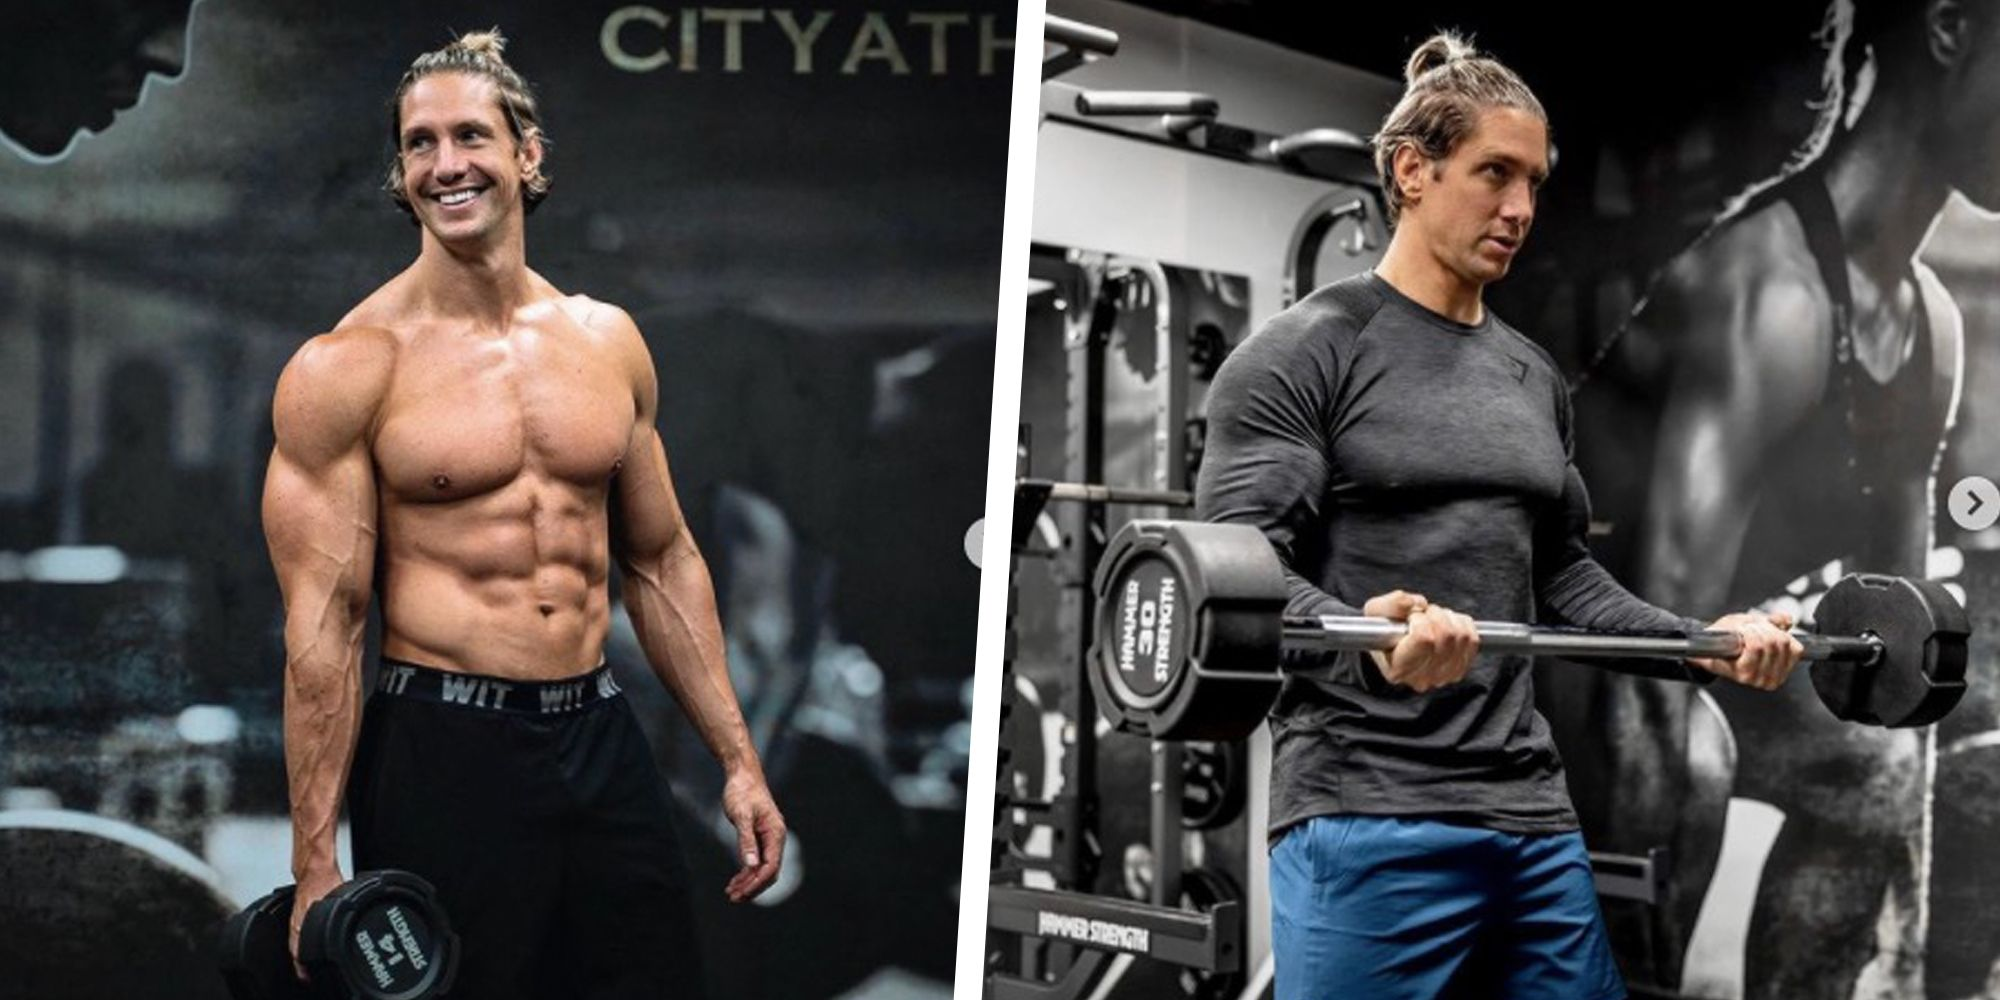 World Champion Fitness Model Shaun Stafford Shares His 20-Minute Workout for Building Muscle